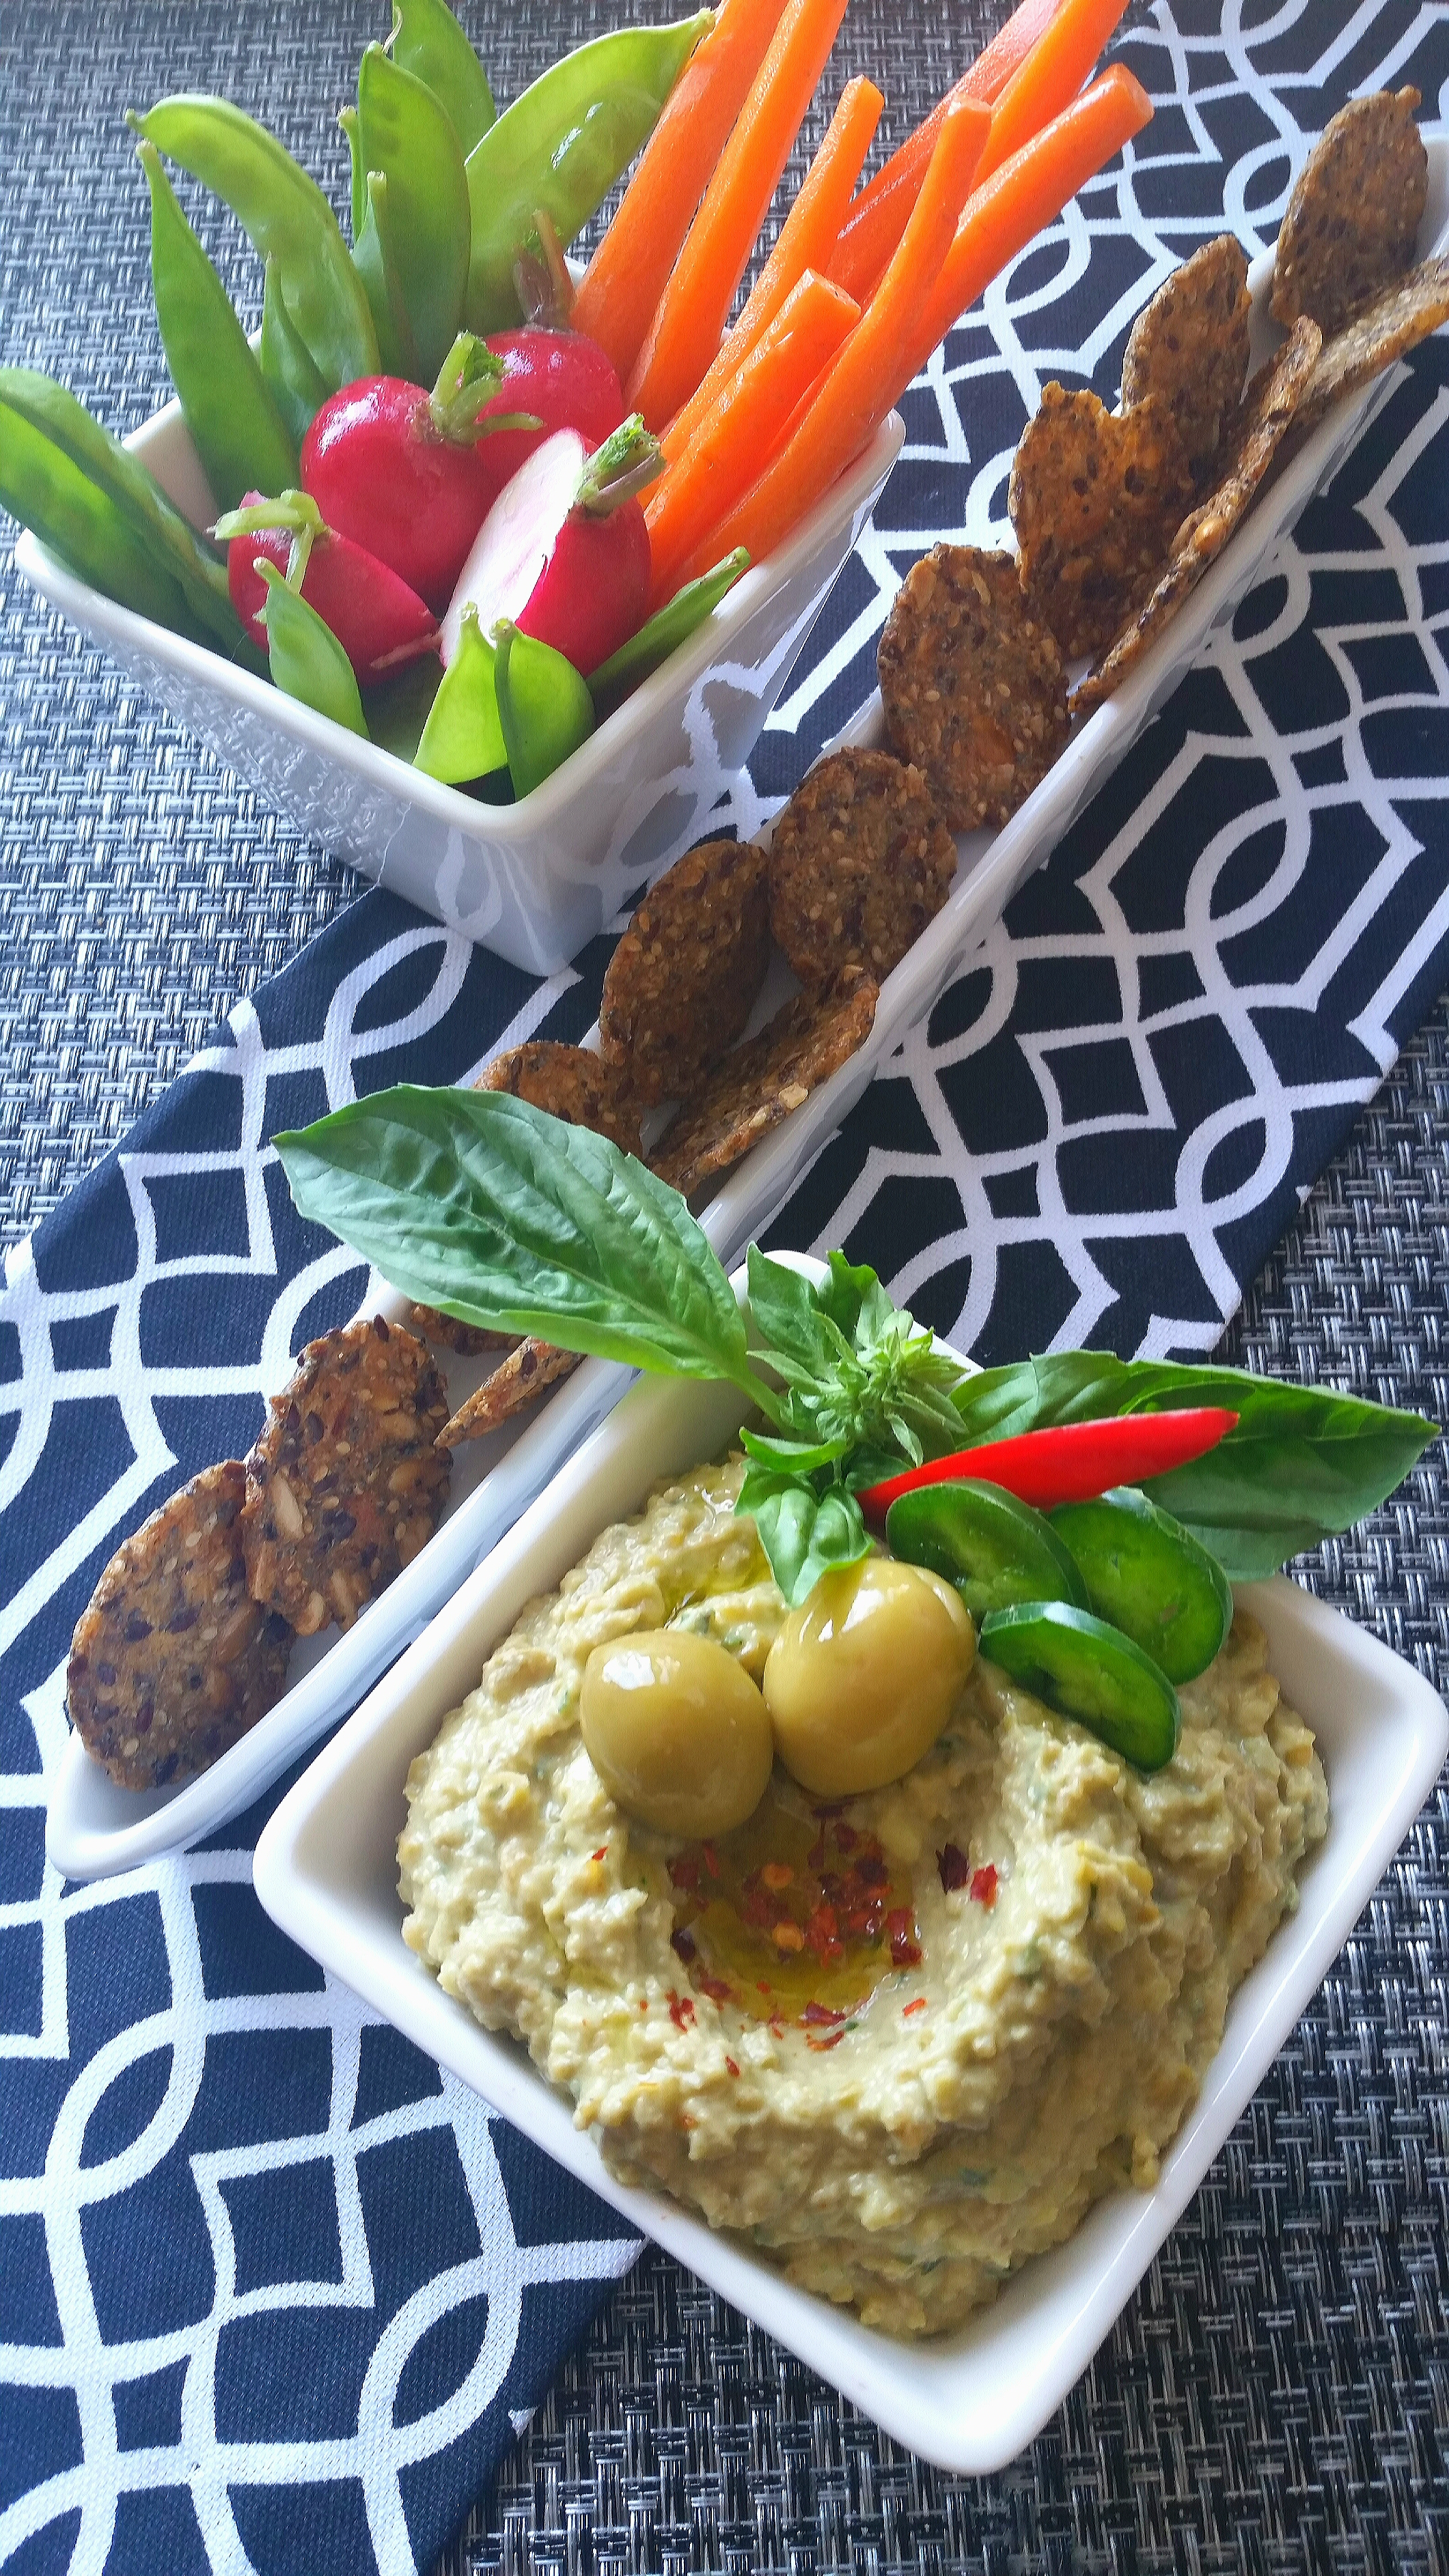 UrbanKitchen: Olive, Chickpea And Avocado Hummus